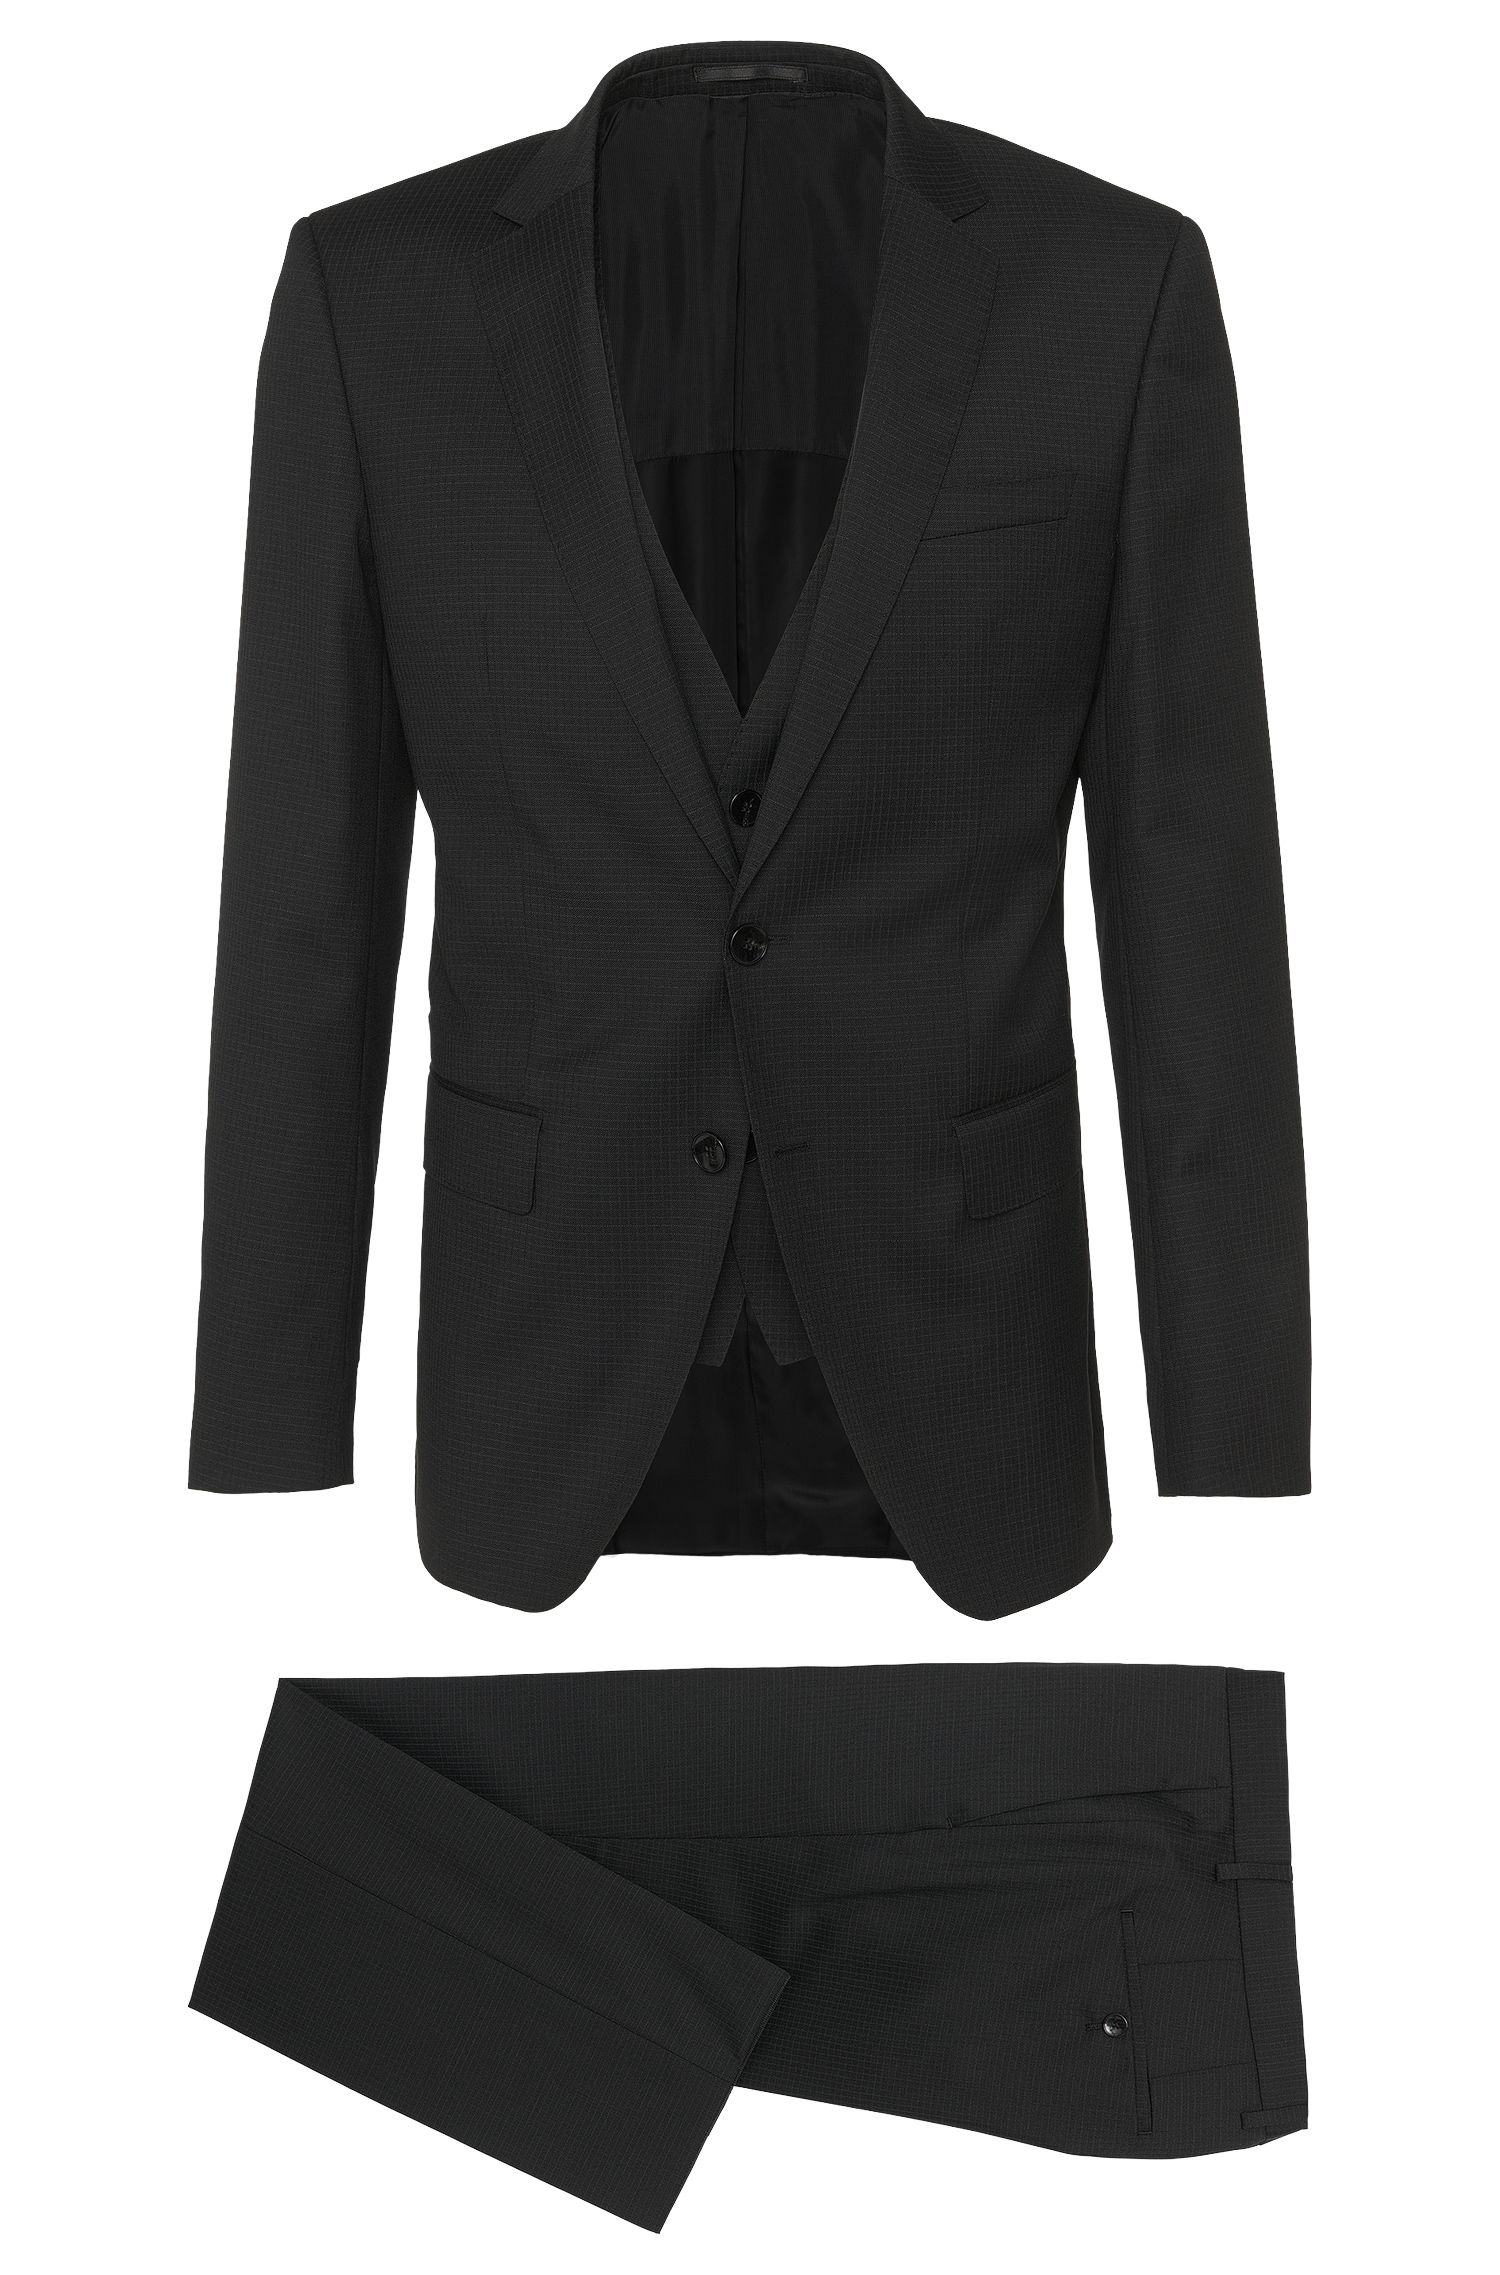 Super 100 Virgin Wool 3-Piece Suit, Slim Fit | Huge/Genius WE